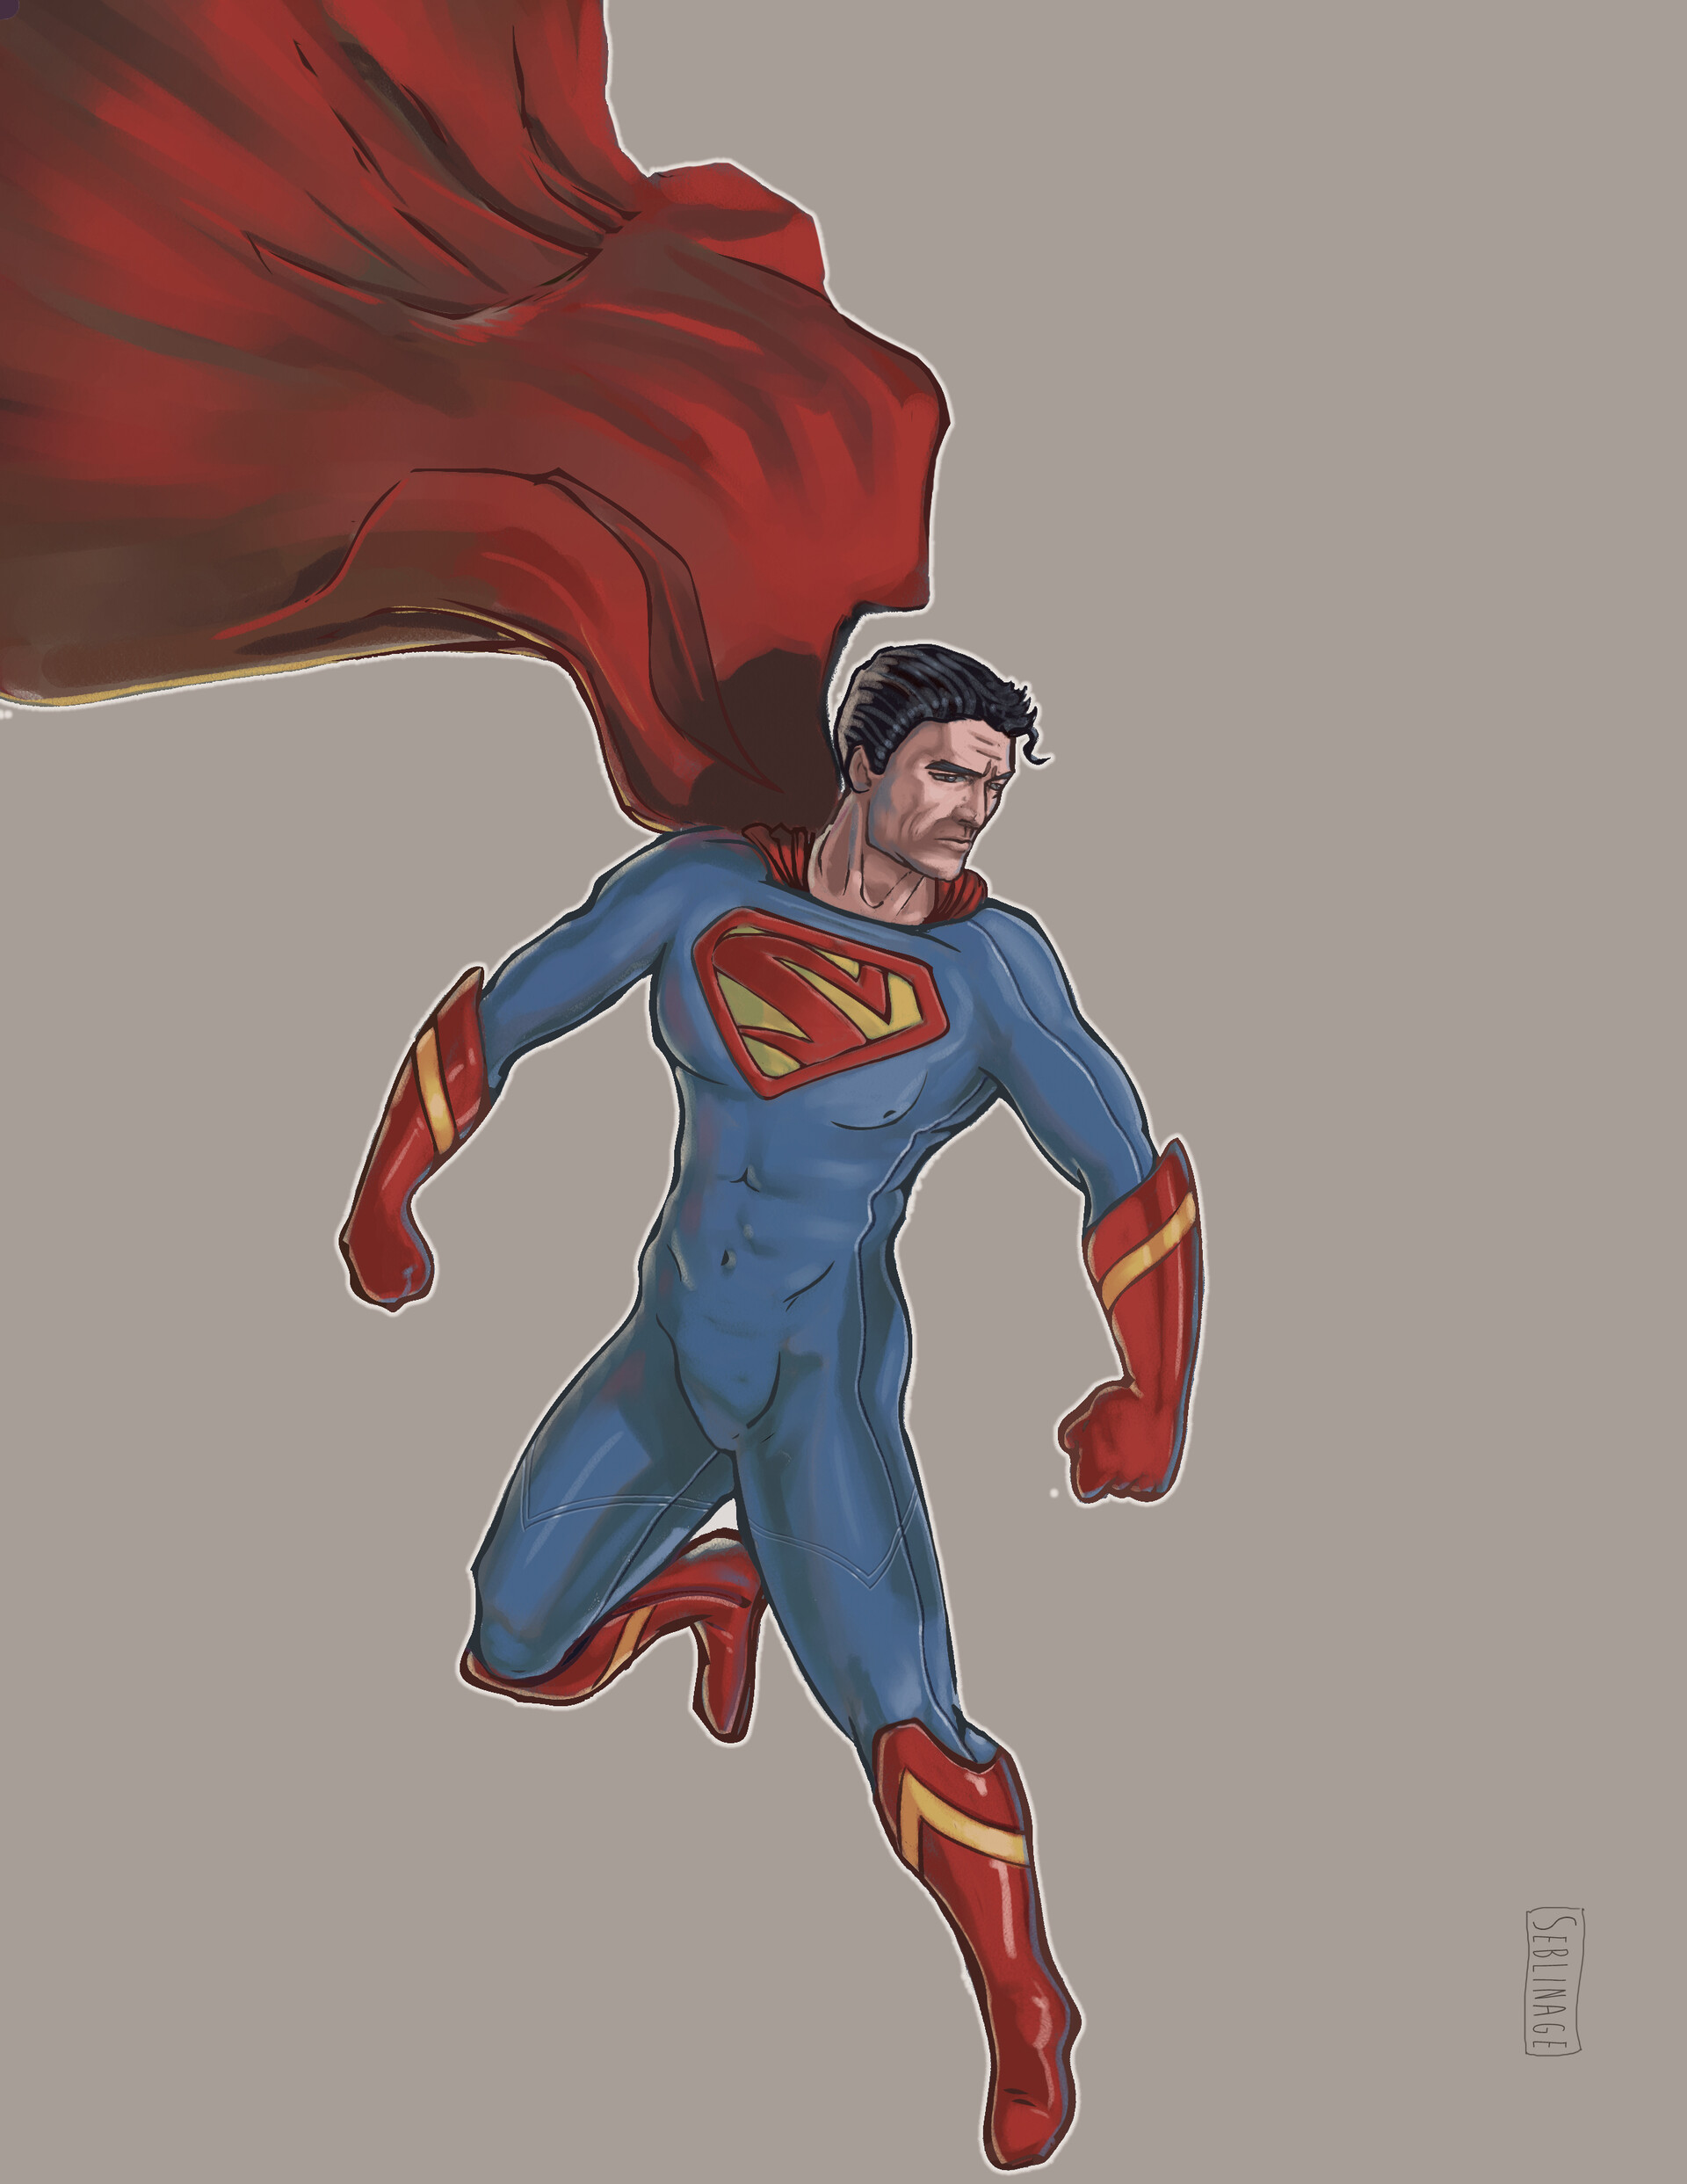 Superman costume variant